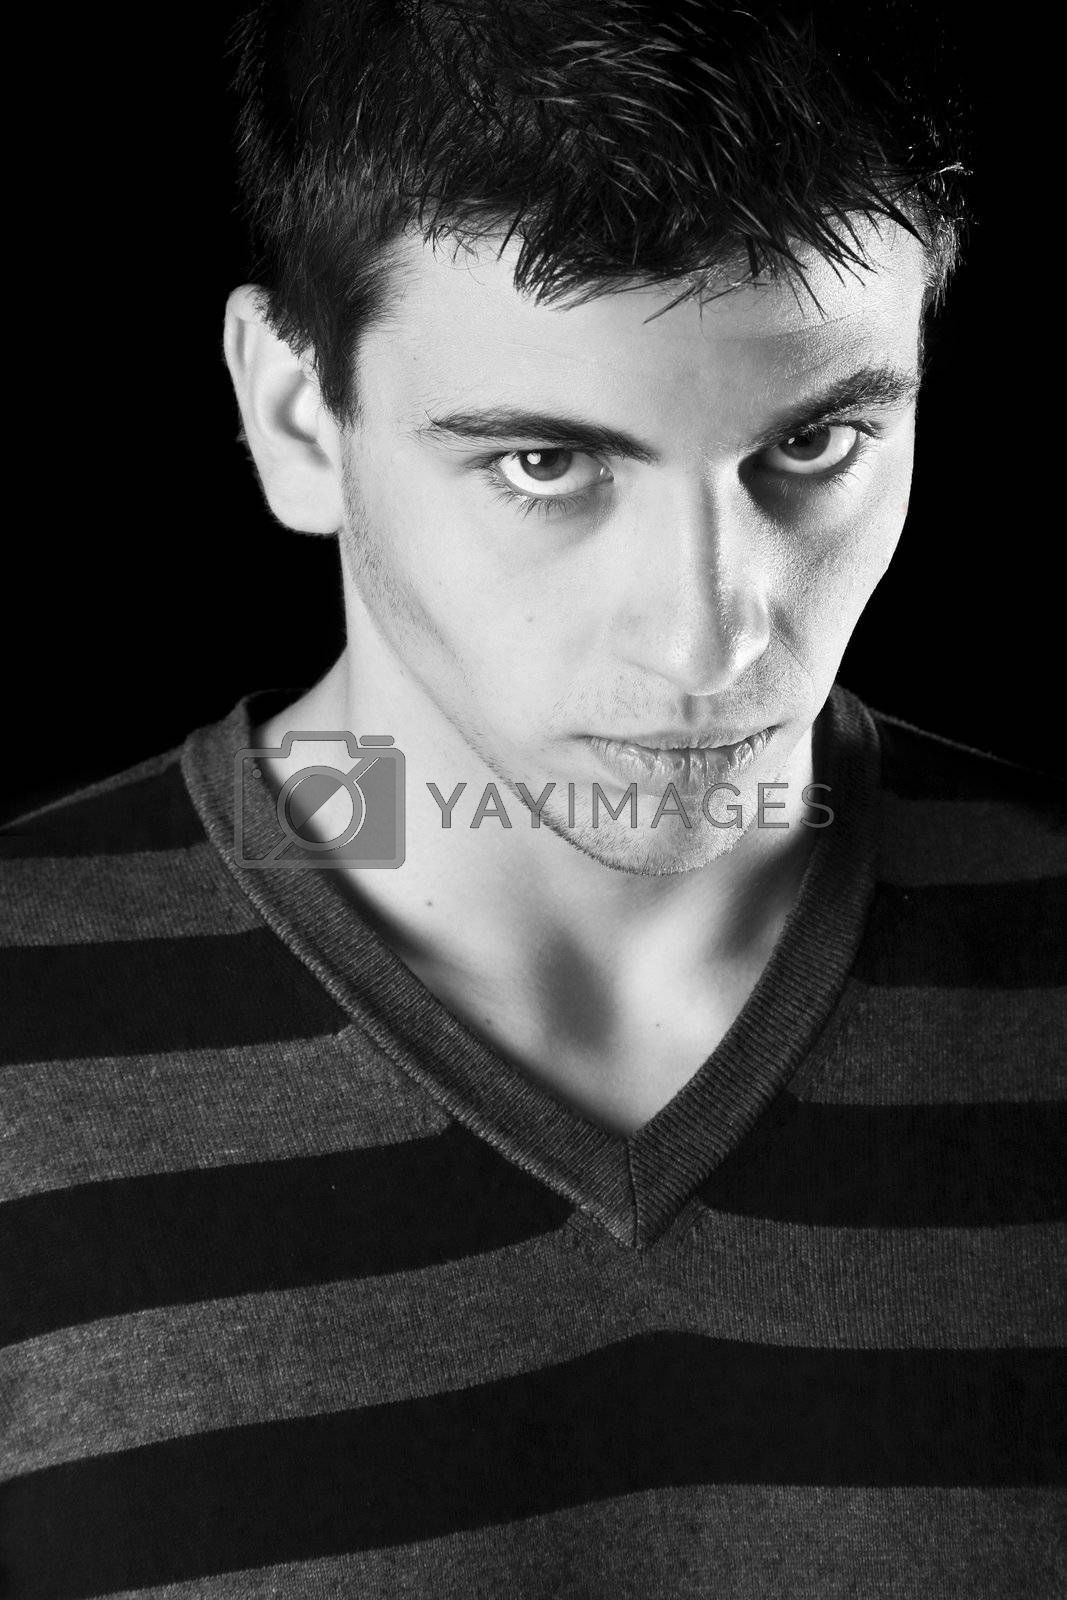 Black and white portrait of a young boy with a tough expression.